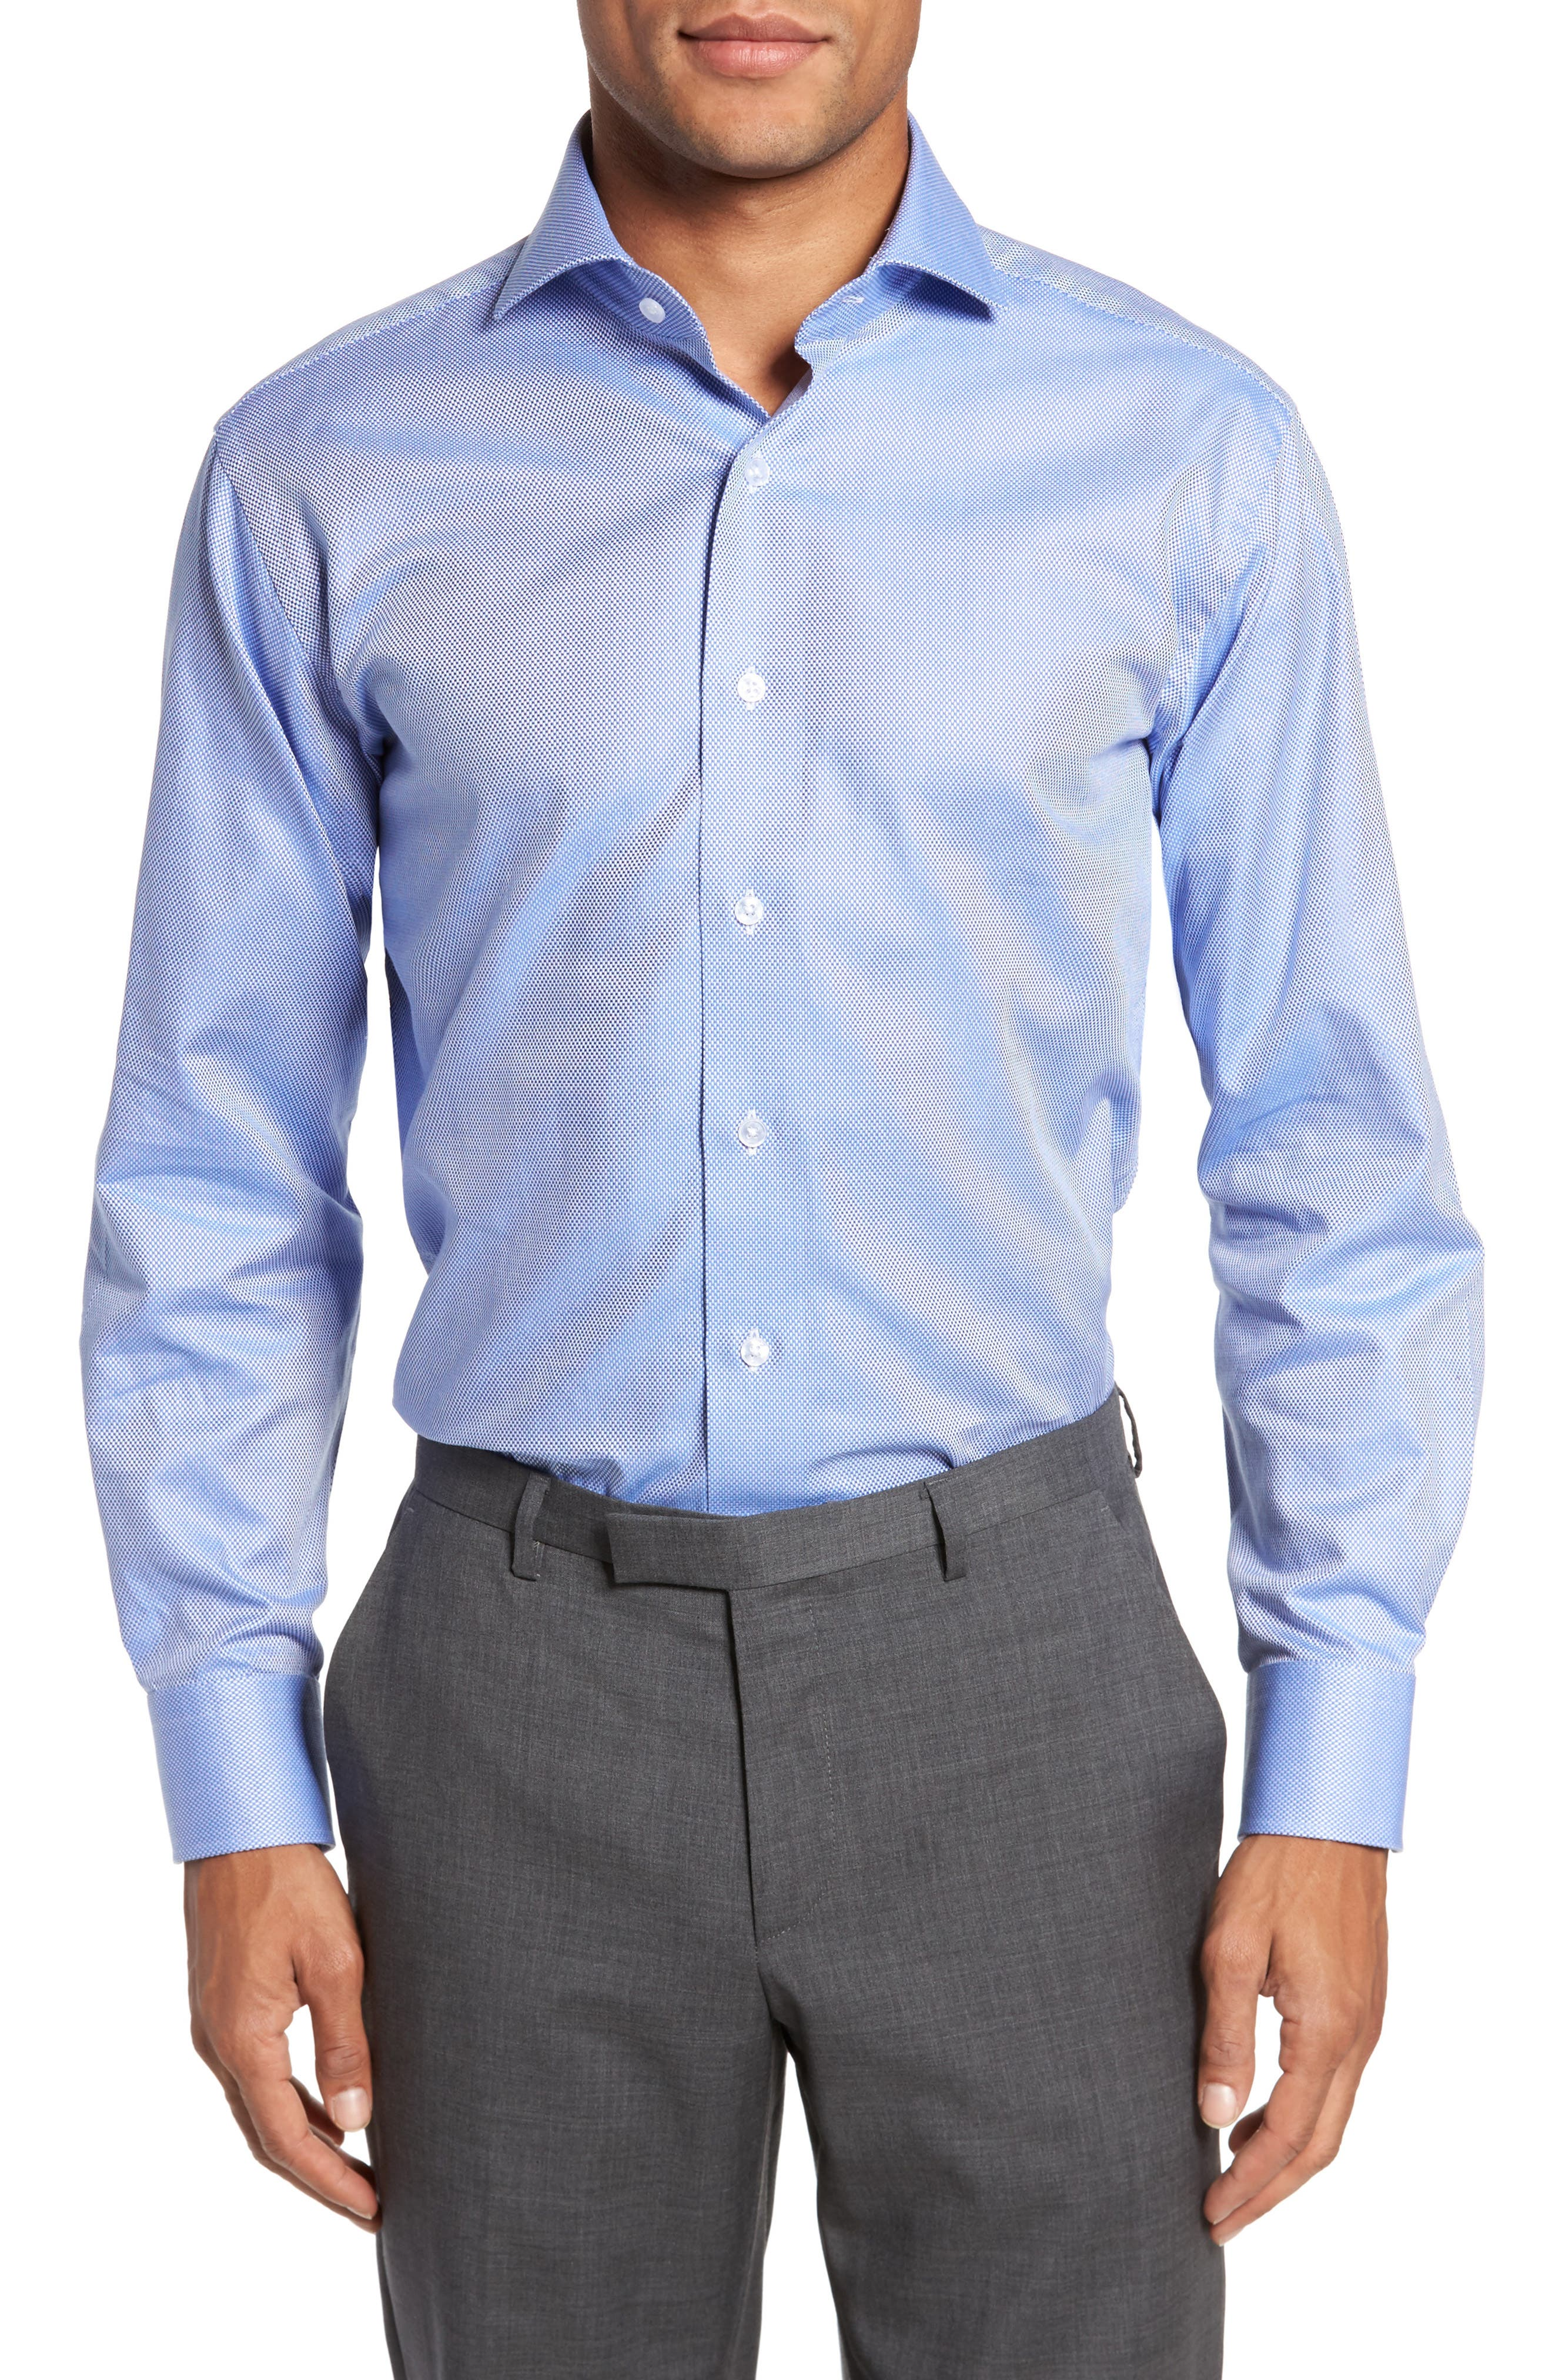 Alternate Image 1 Selected - Lorenzo Uomo Trim Fit Texture Dress Shirt